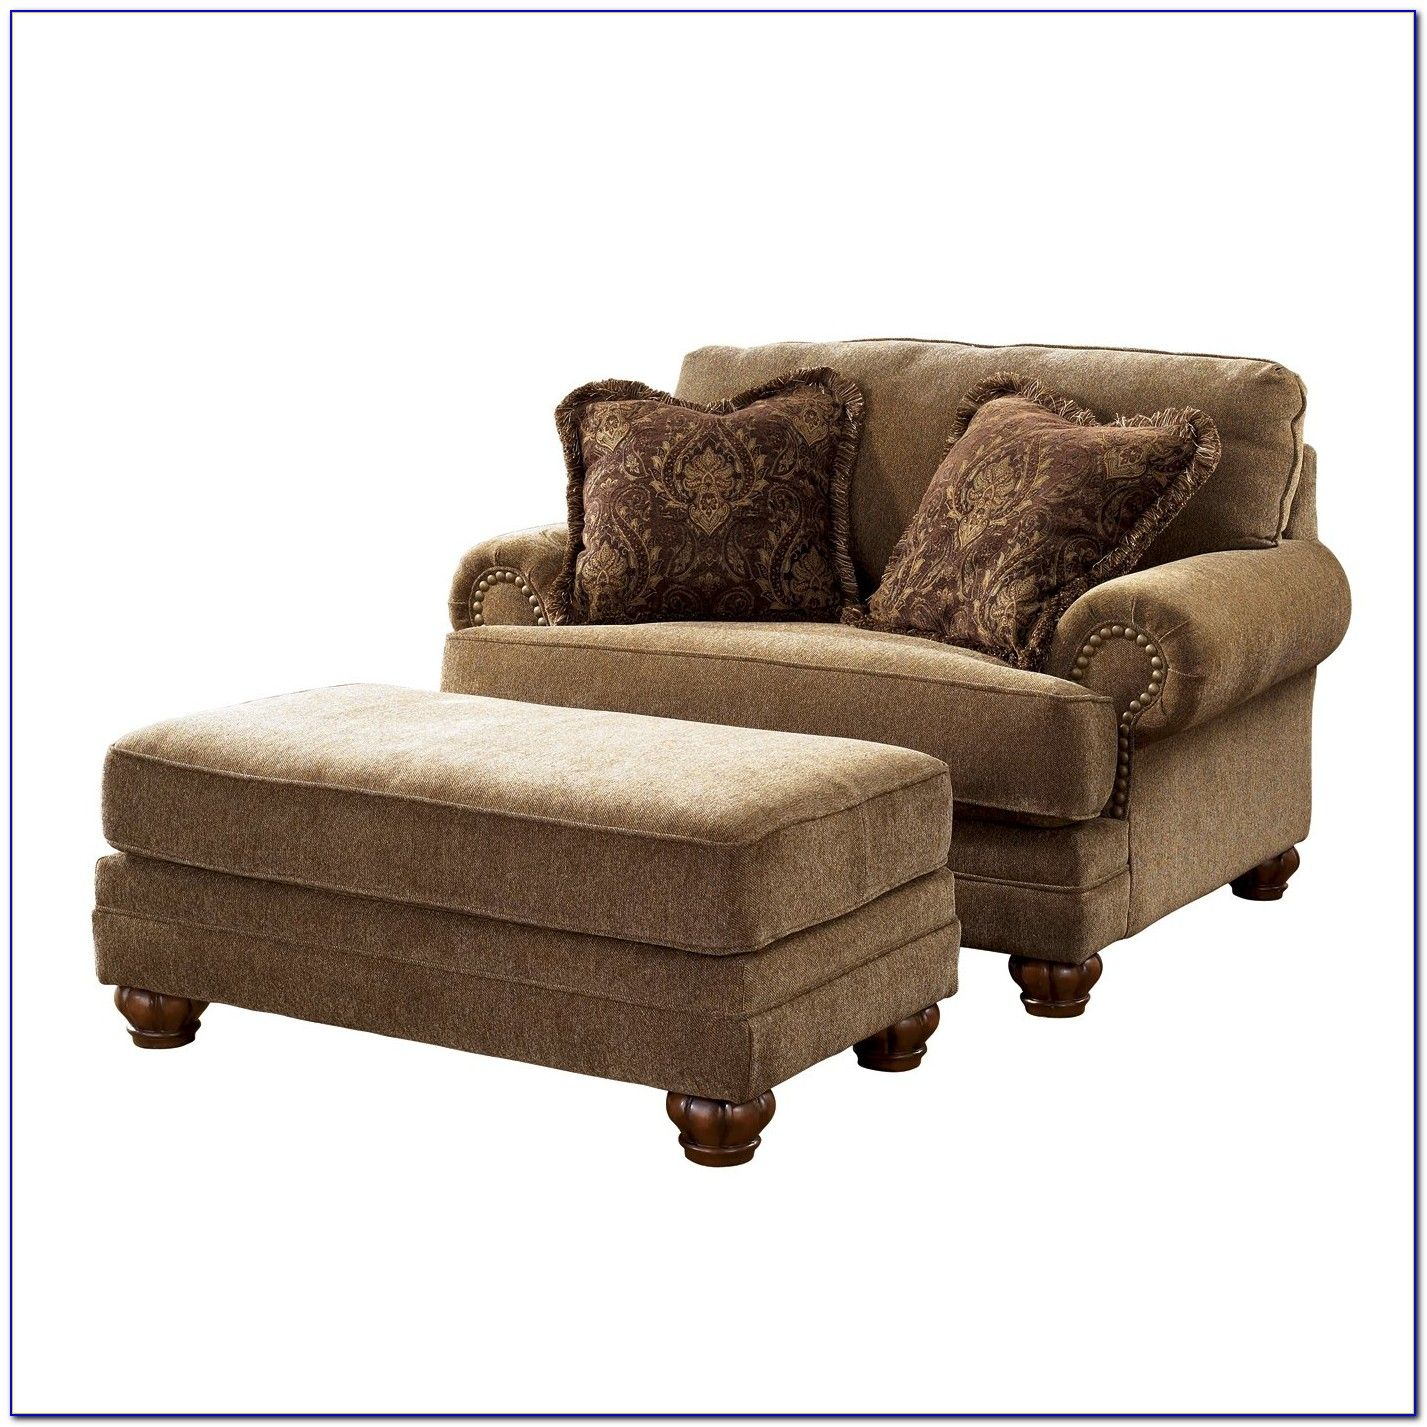 A Chair And A Half In Canada Home Interior Design Ideas In 2020 Chair And A Half Sofa Bed Living Room Sofa Bed Living